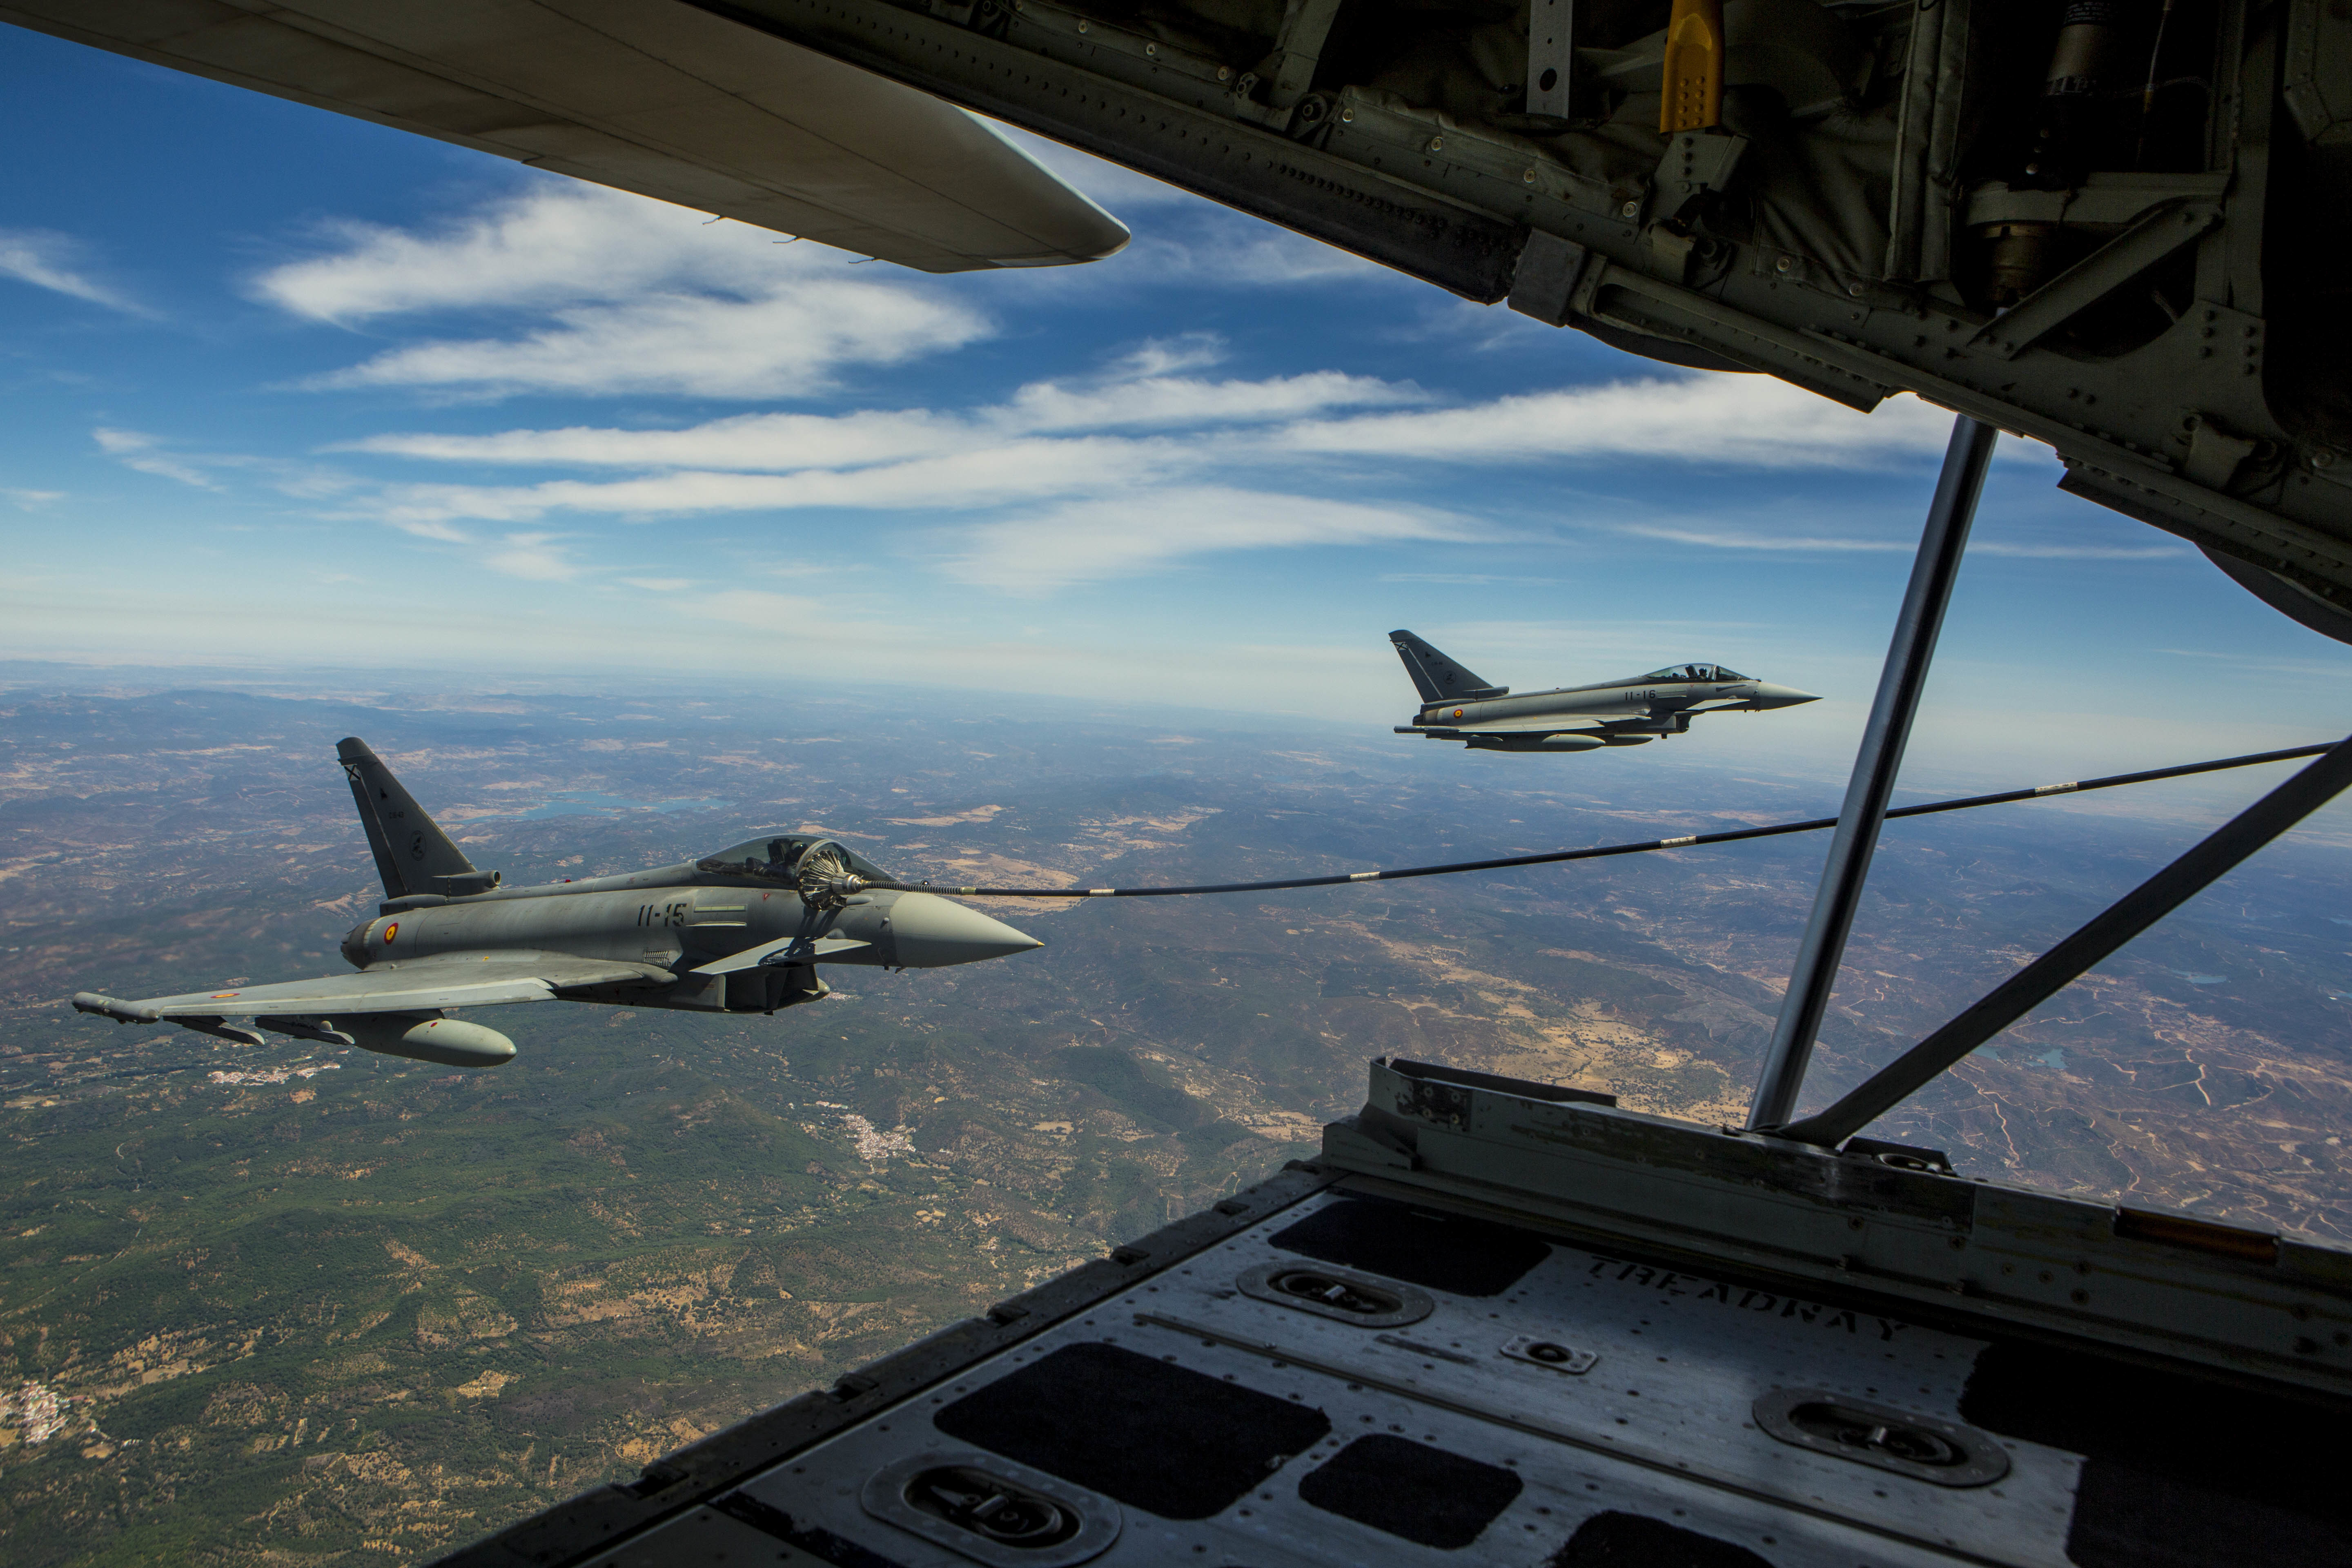 A Eurofighter Typhoon with the Spanish Air Force receives fuel from a U.S. Marine KC-130J Hercules with Special-Purpose Marine Air-Ground Task Force Crisis Response-Africa, August 13, in Spain. A total of five Spanish pilots and their aircraft had the opportunity to practice their air-to-air refueling skills with the Marines from SPMAGTF-CR-AF. While this particular training was a first for the two countries, the U.S. and Spain work together routinely, fostering one of the closest defense partnerships around the world.(U.S. Marine Corps photo by Staff Sgt. Vitaliy Rusavskiy/Released)